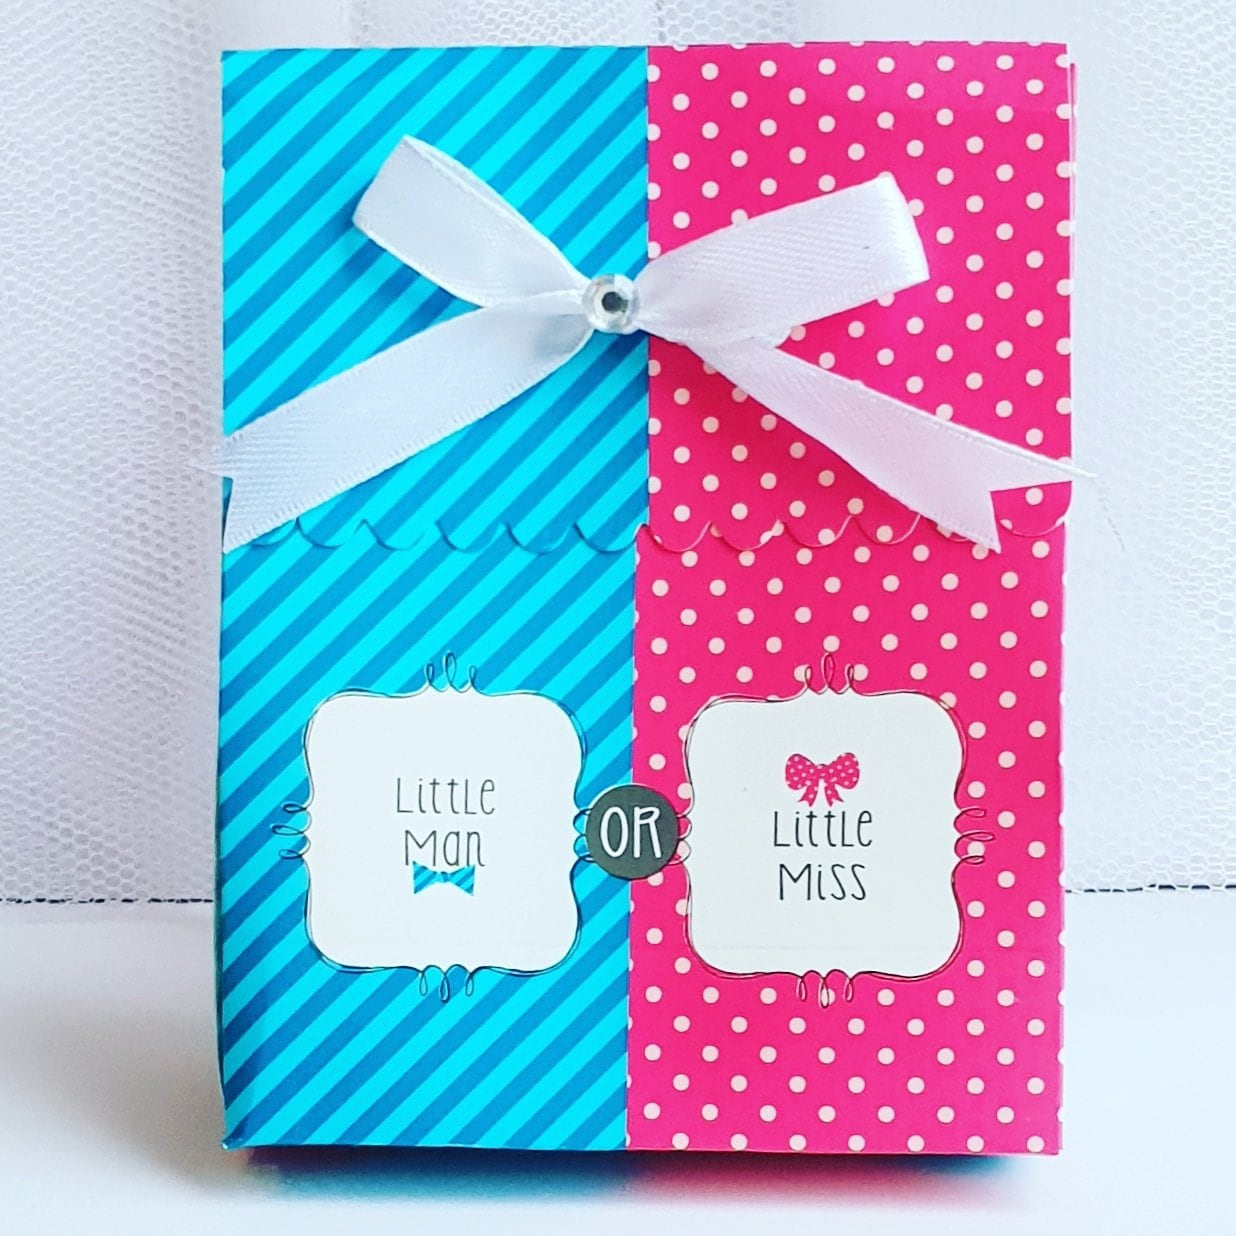 REVEAL LITTLE MAN LITTLE MISS BOW OR BOWTIE BABY SHOWER FAVOR BAGS WITH RIBBON